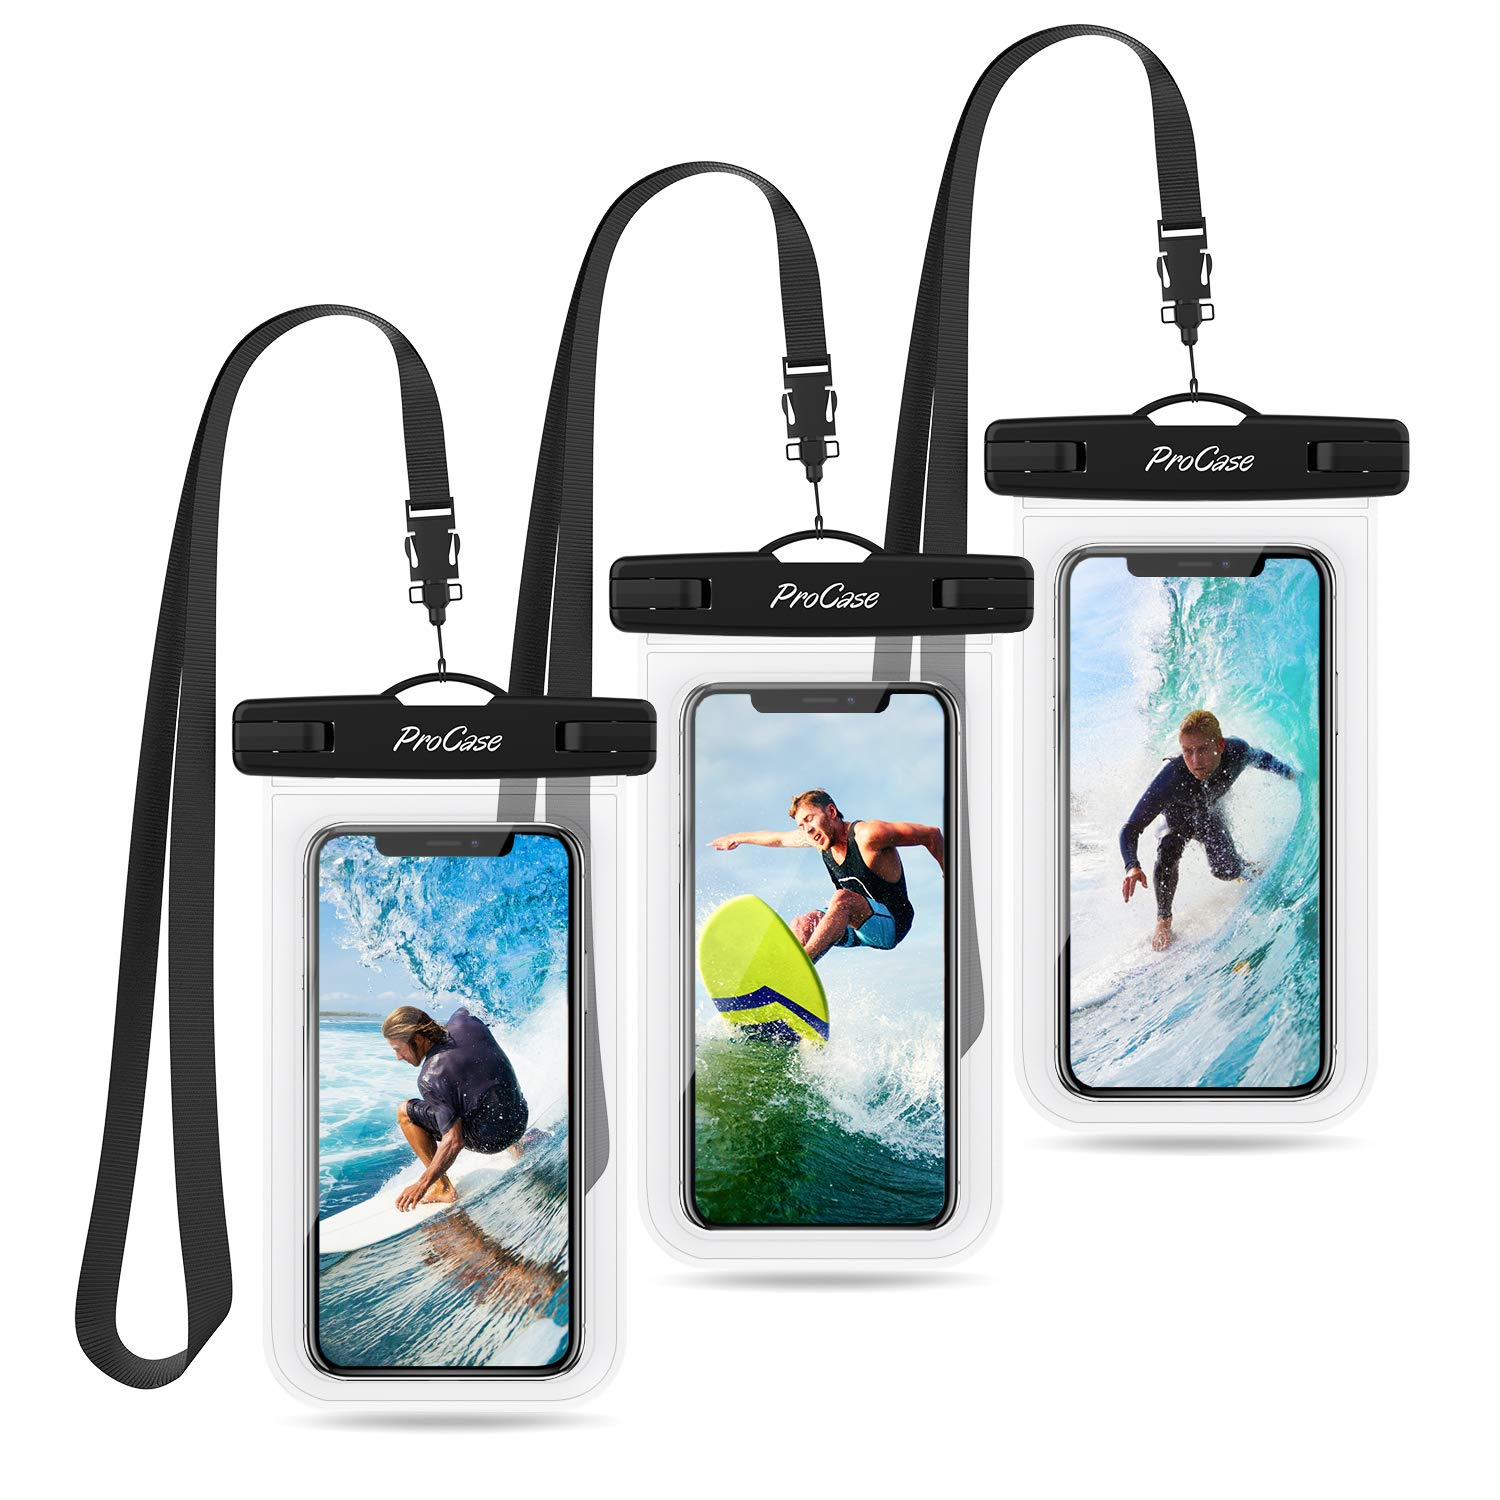 ProCase Universal Waterproof Pouch Cellphone Dry Bag Underwater Case for iPhone Xs Max XR X 8 7 6S Plus, Galaxy S10 Plus S9 S8 +/Note 9 8, Pixel 3 2 XL up to 6.5'' - 3 Pack, Clear by ProCase